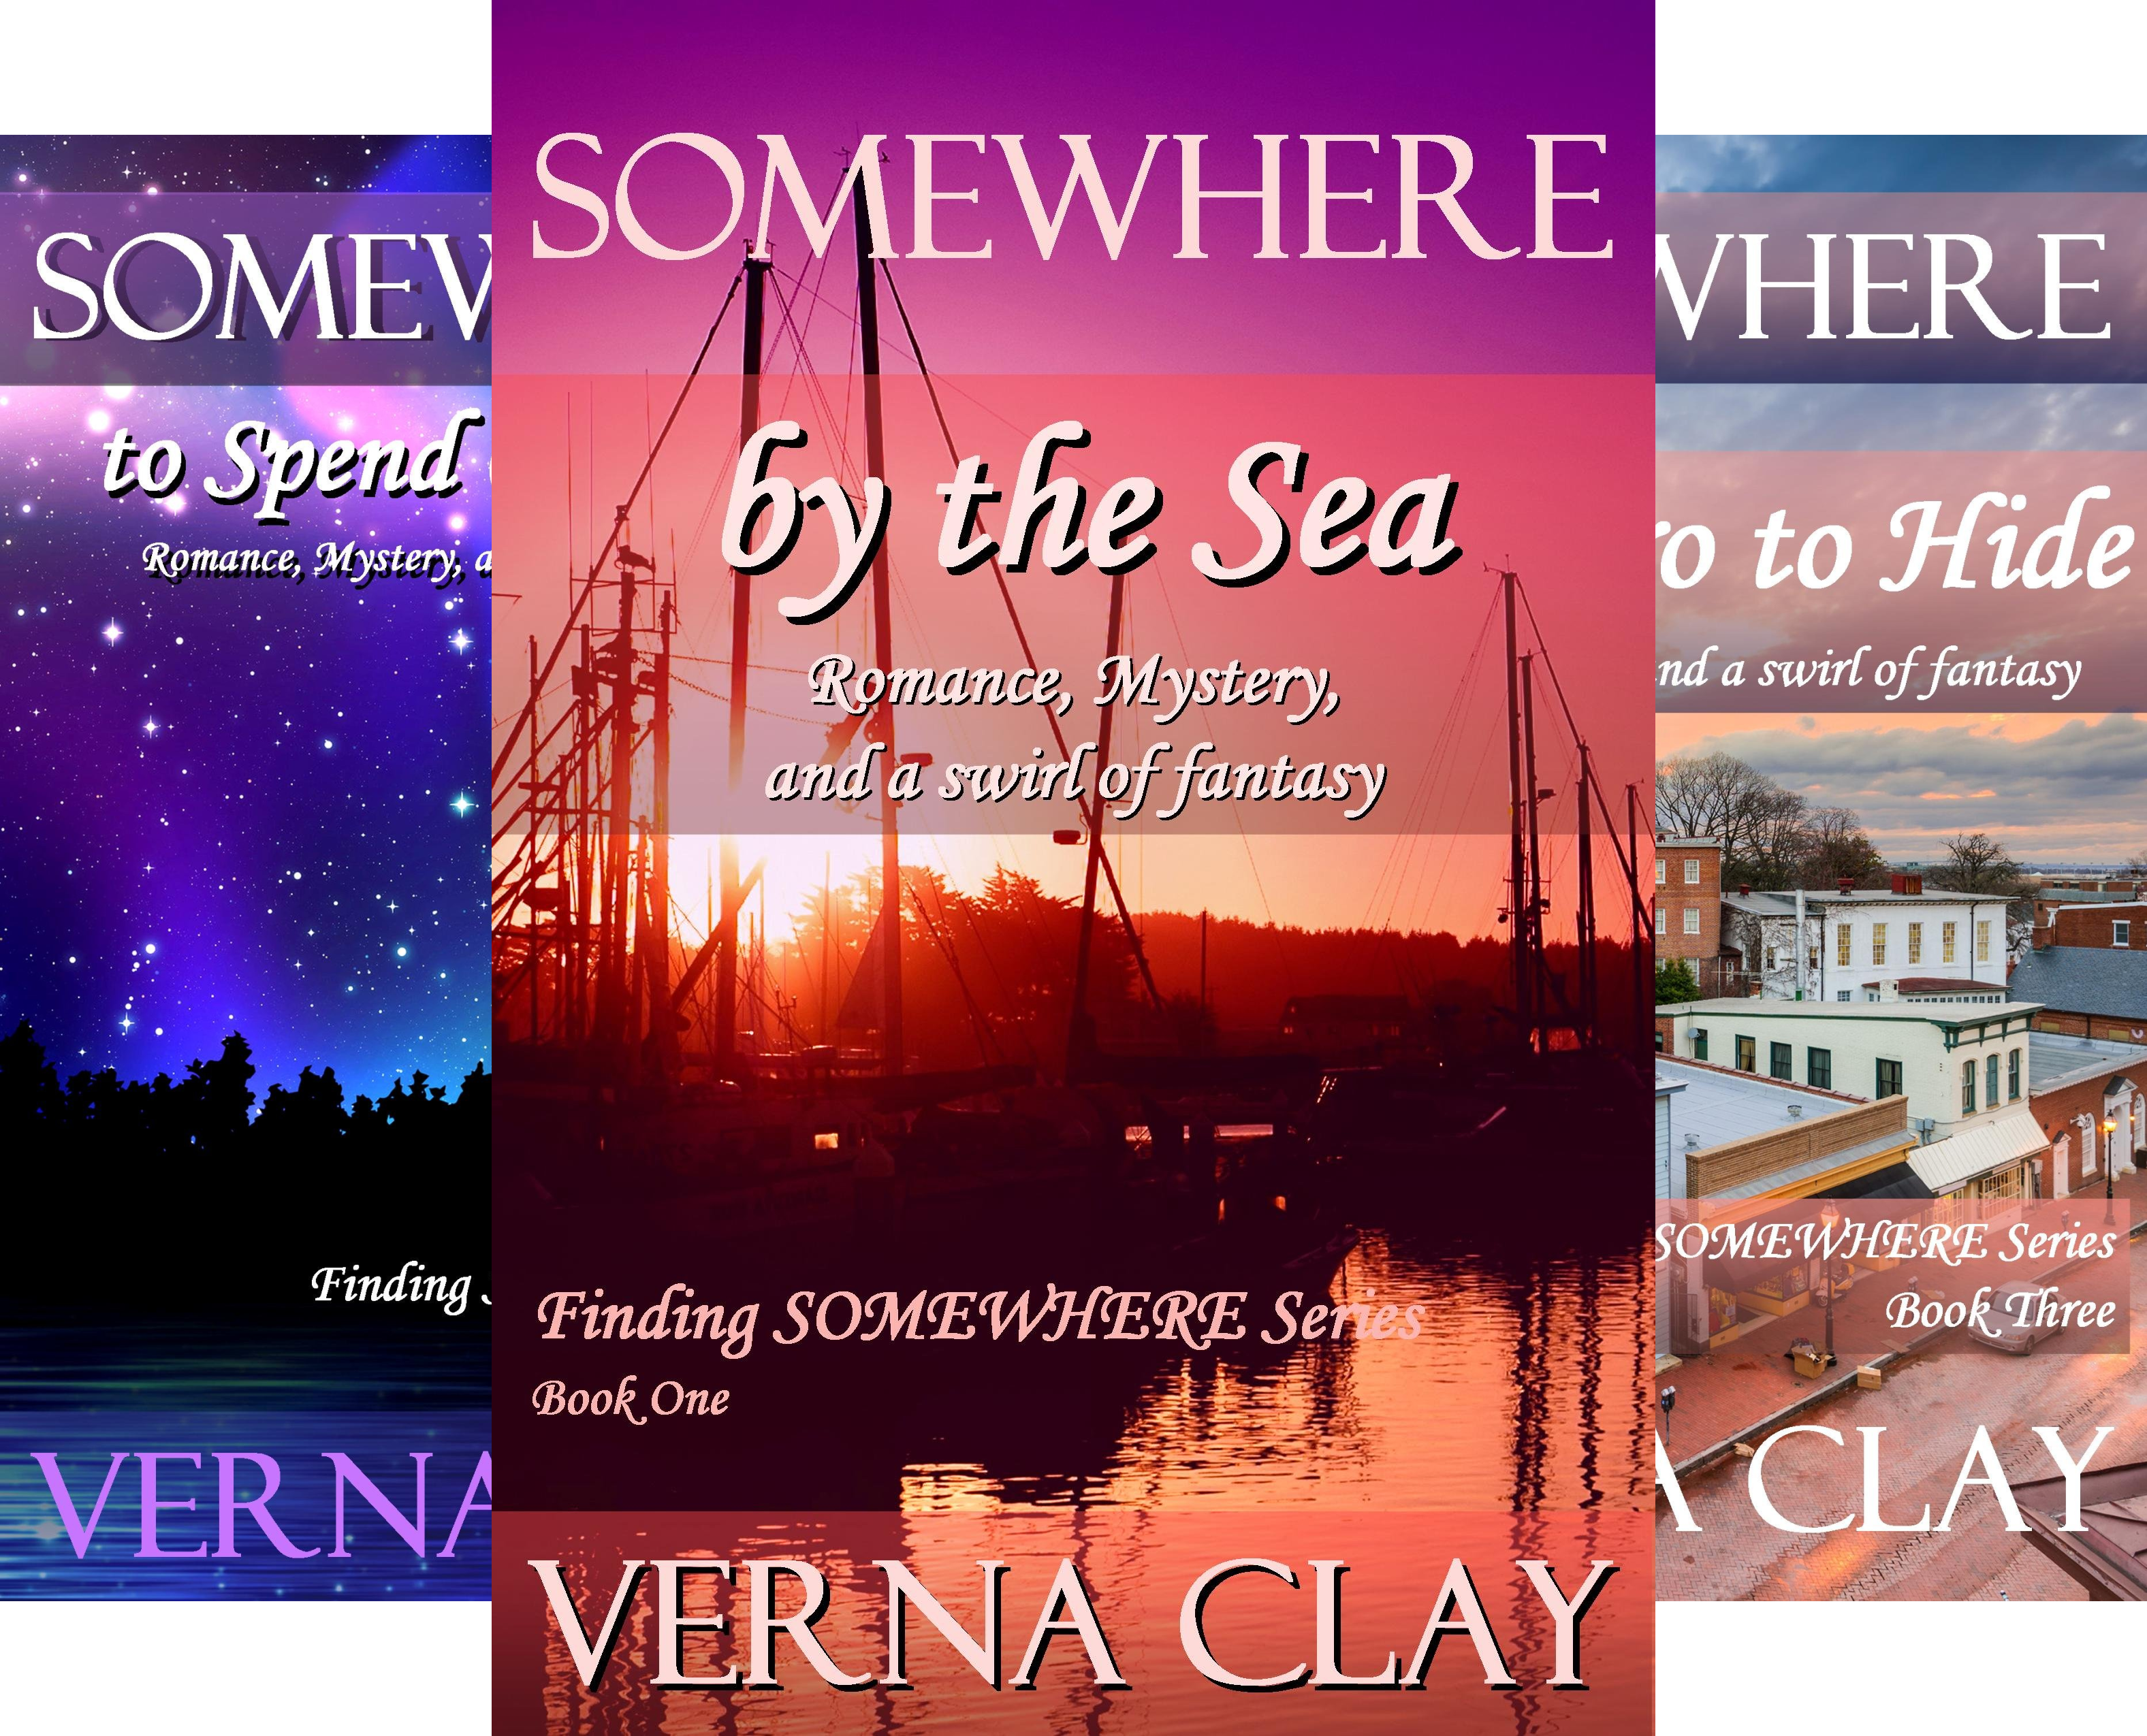 Finding SOMEWHERE Series (3 Book Series)